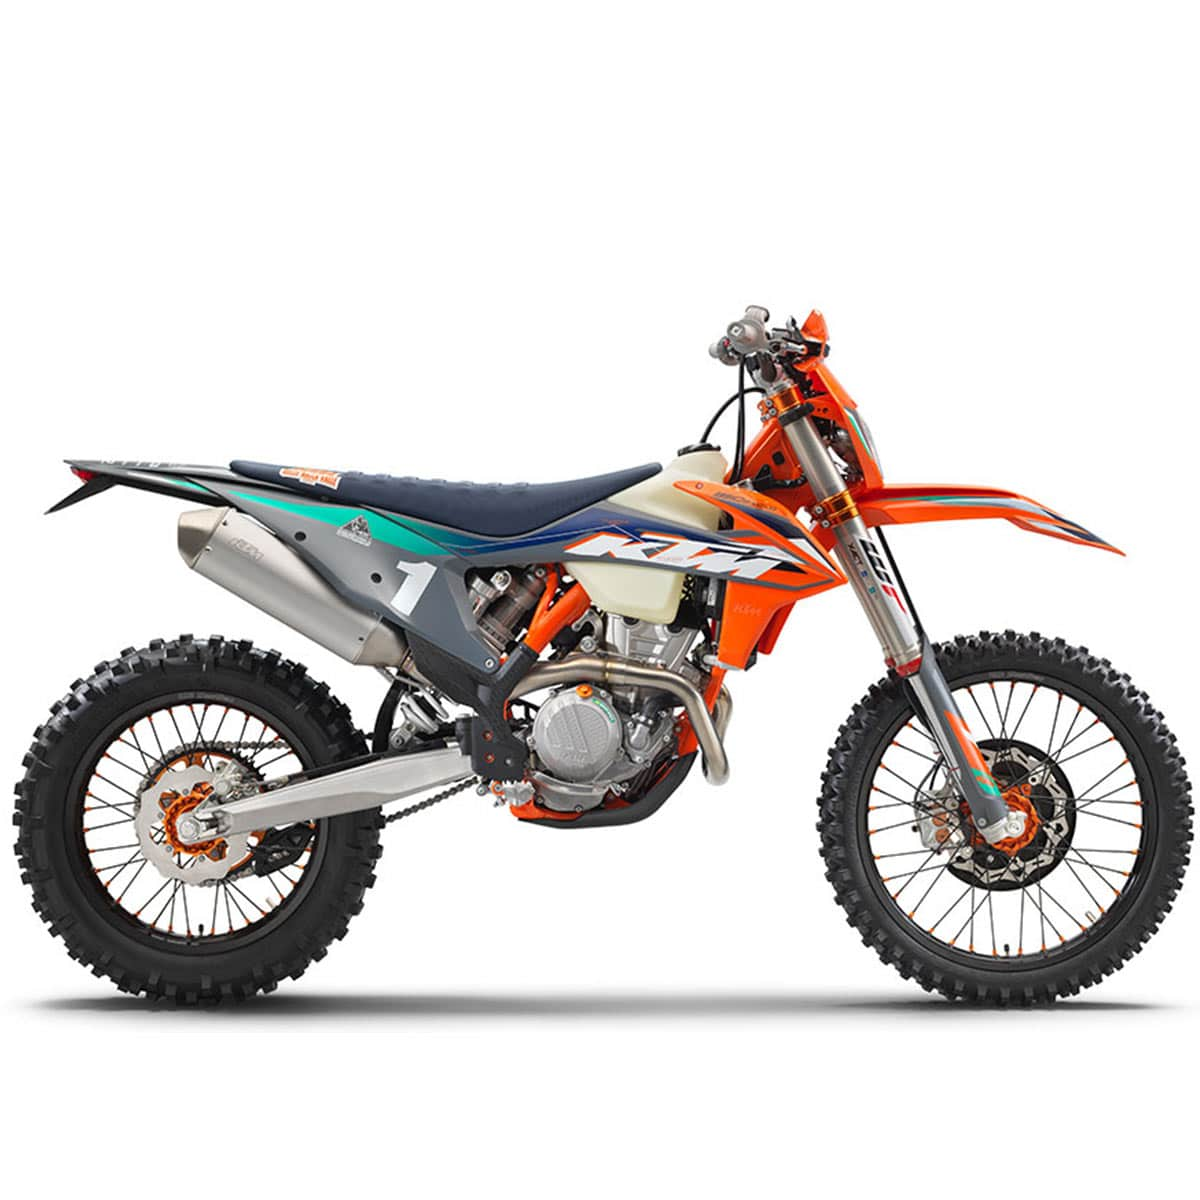 PHO_BIKE_90_RE_350excf-wess